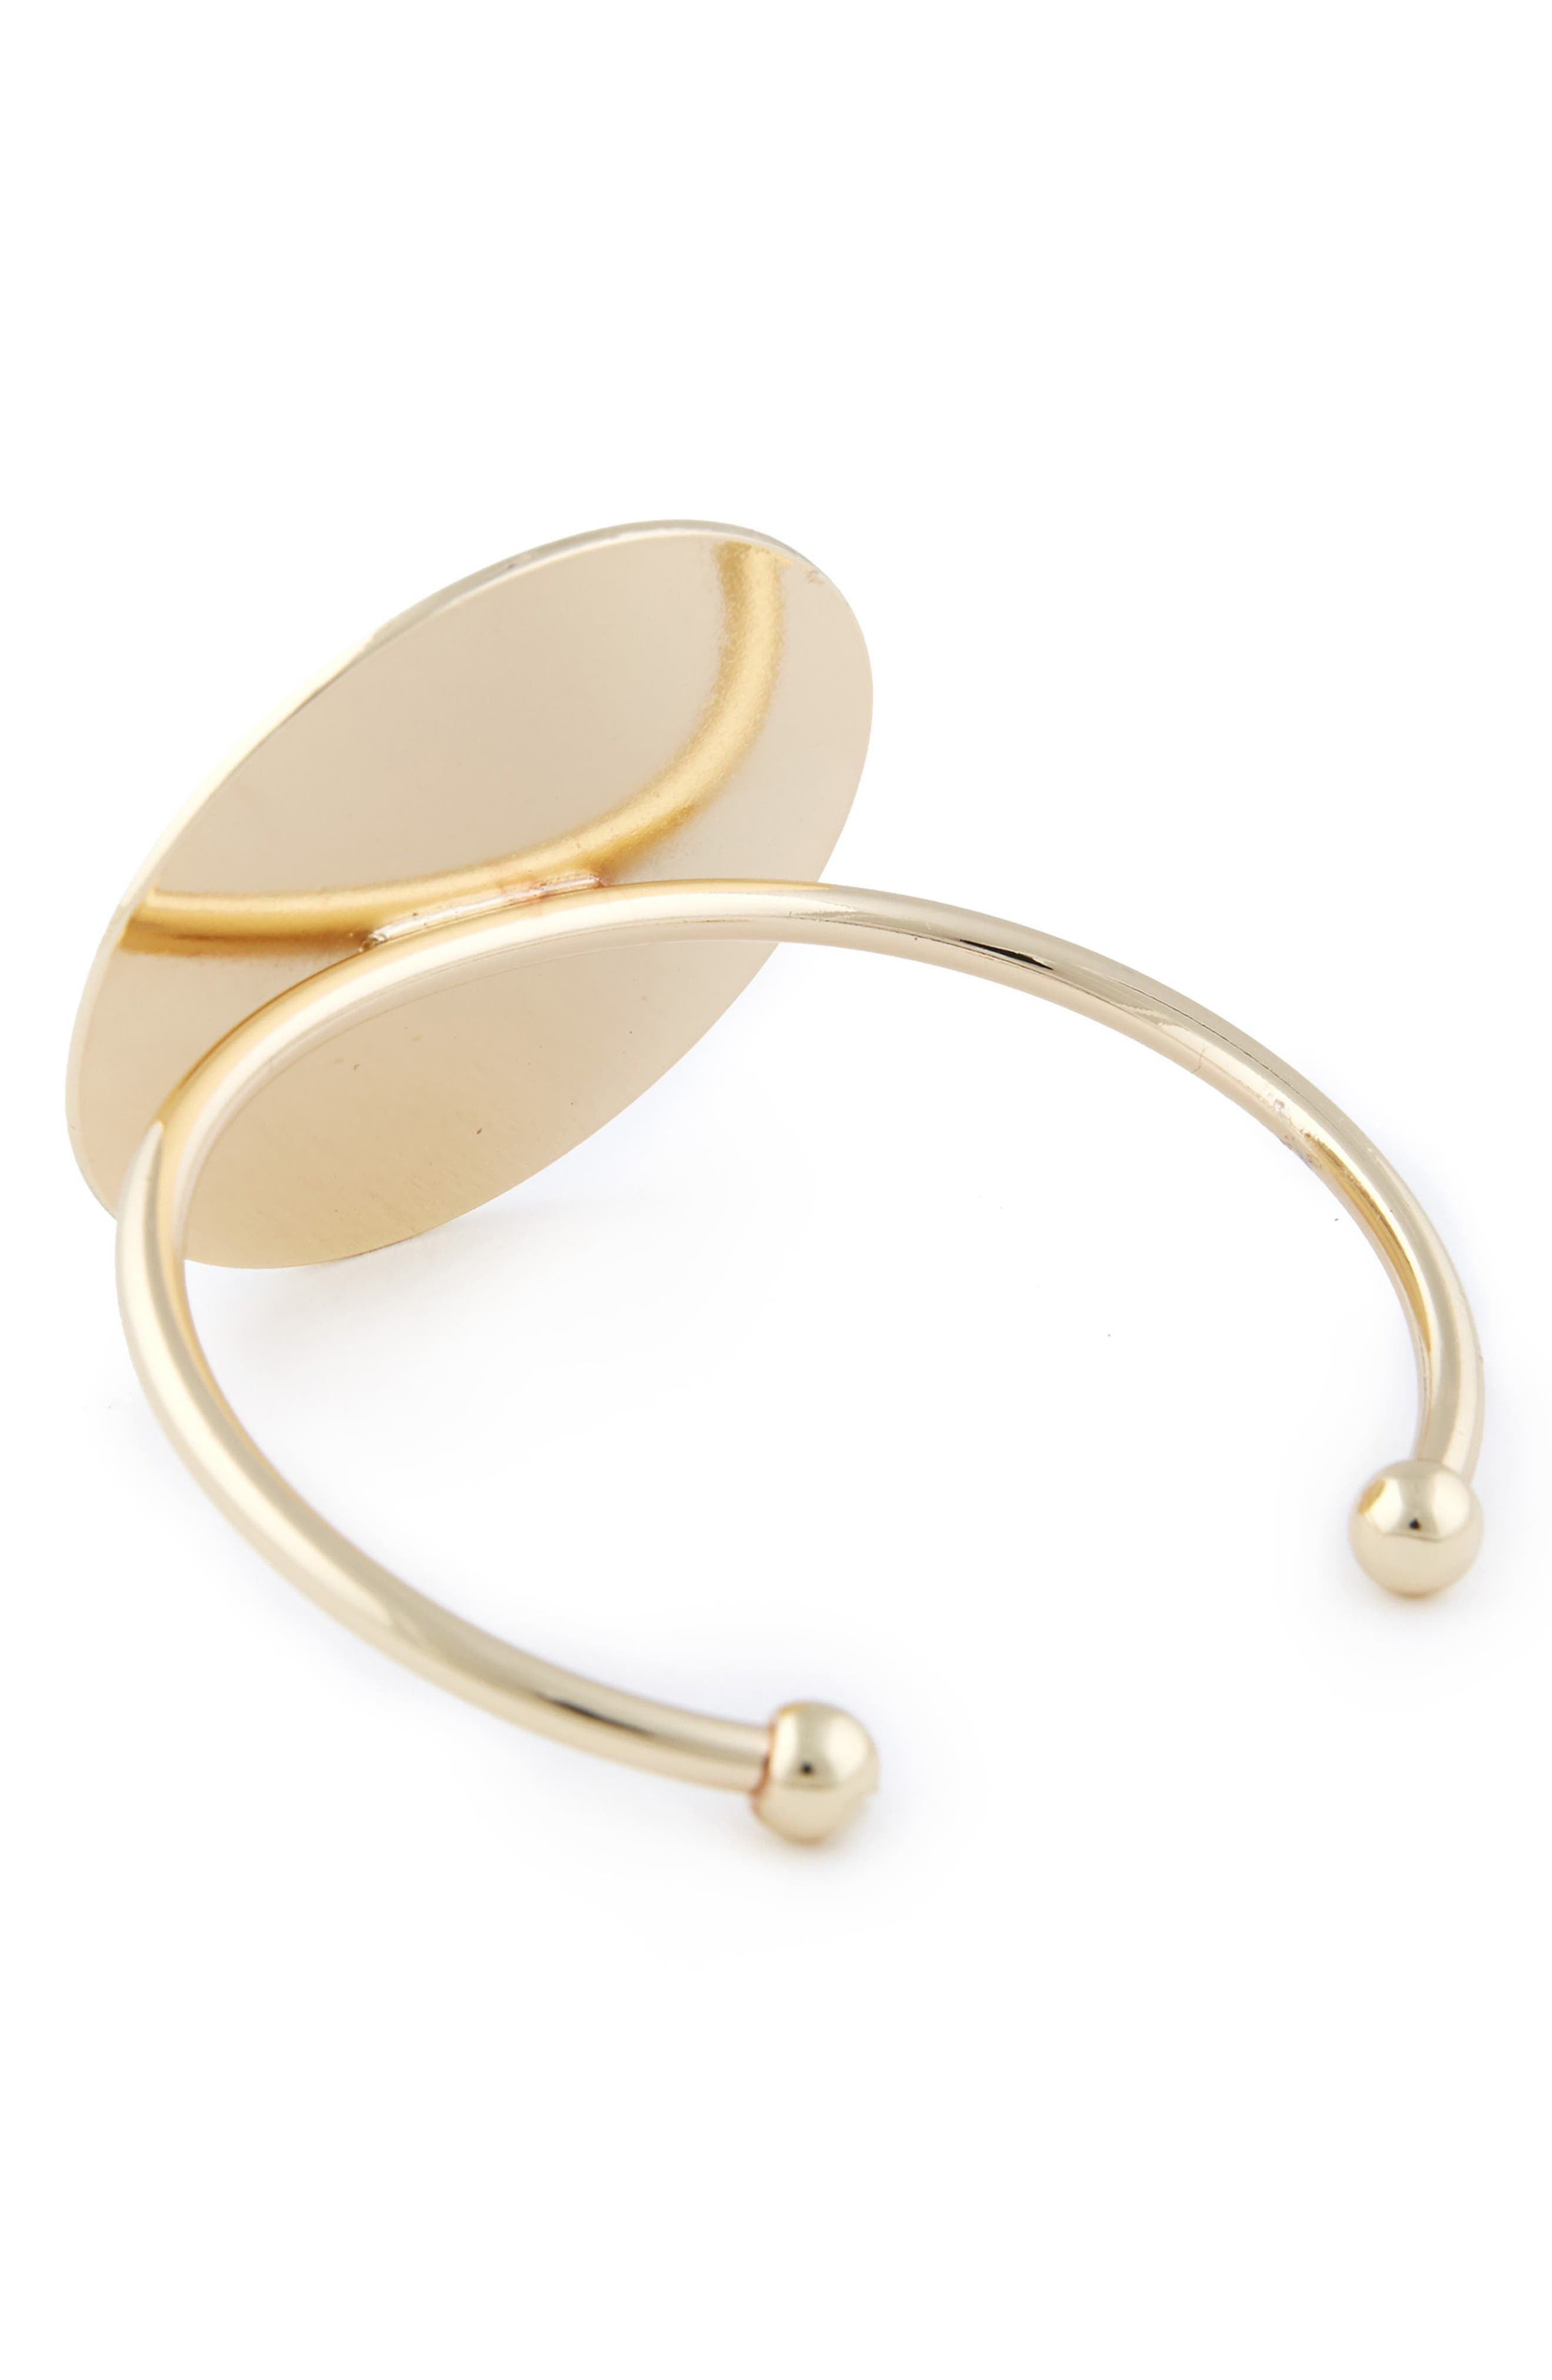 Mirrored Bangle,                             Alternate thumbnail 2, color,